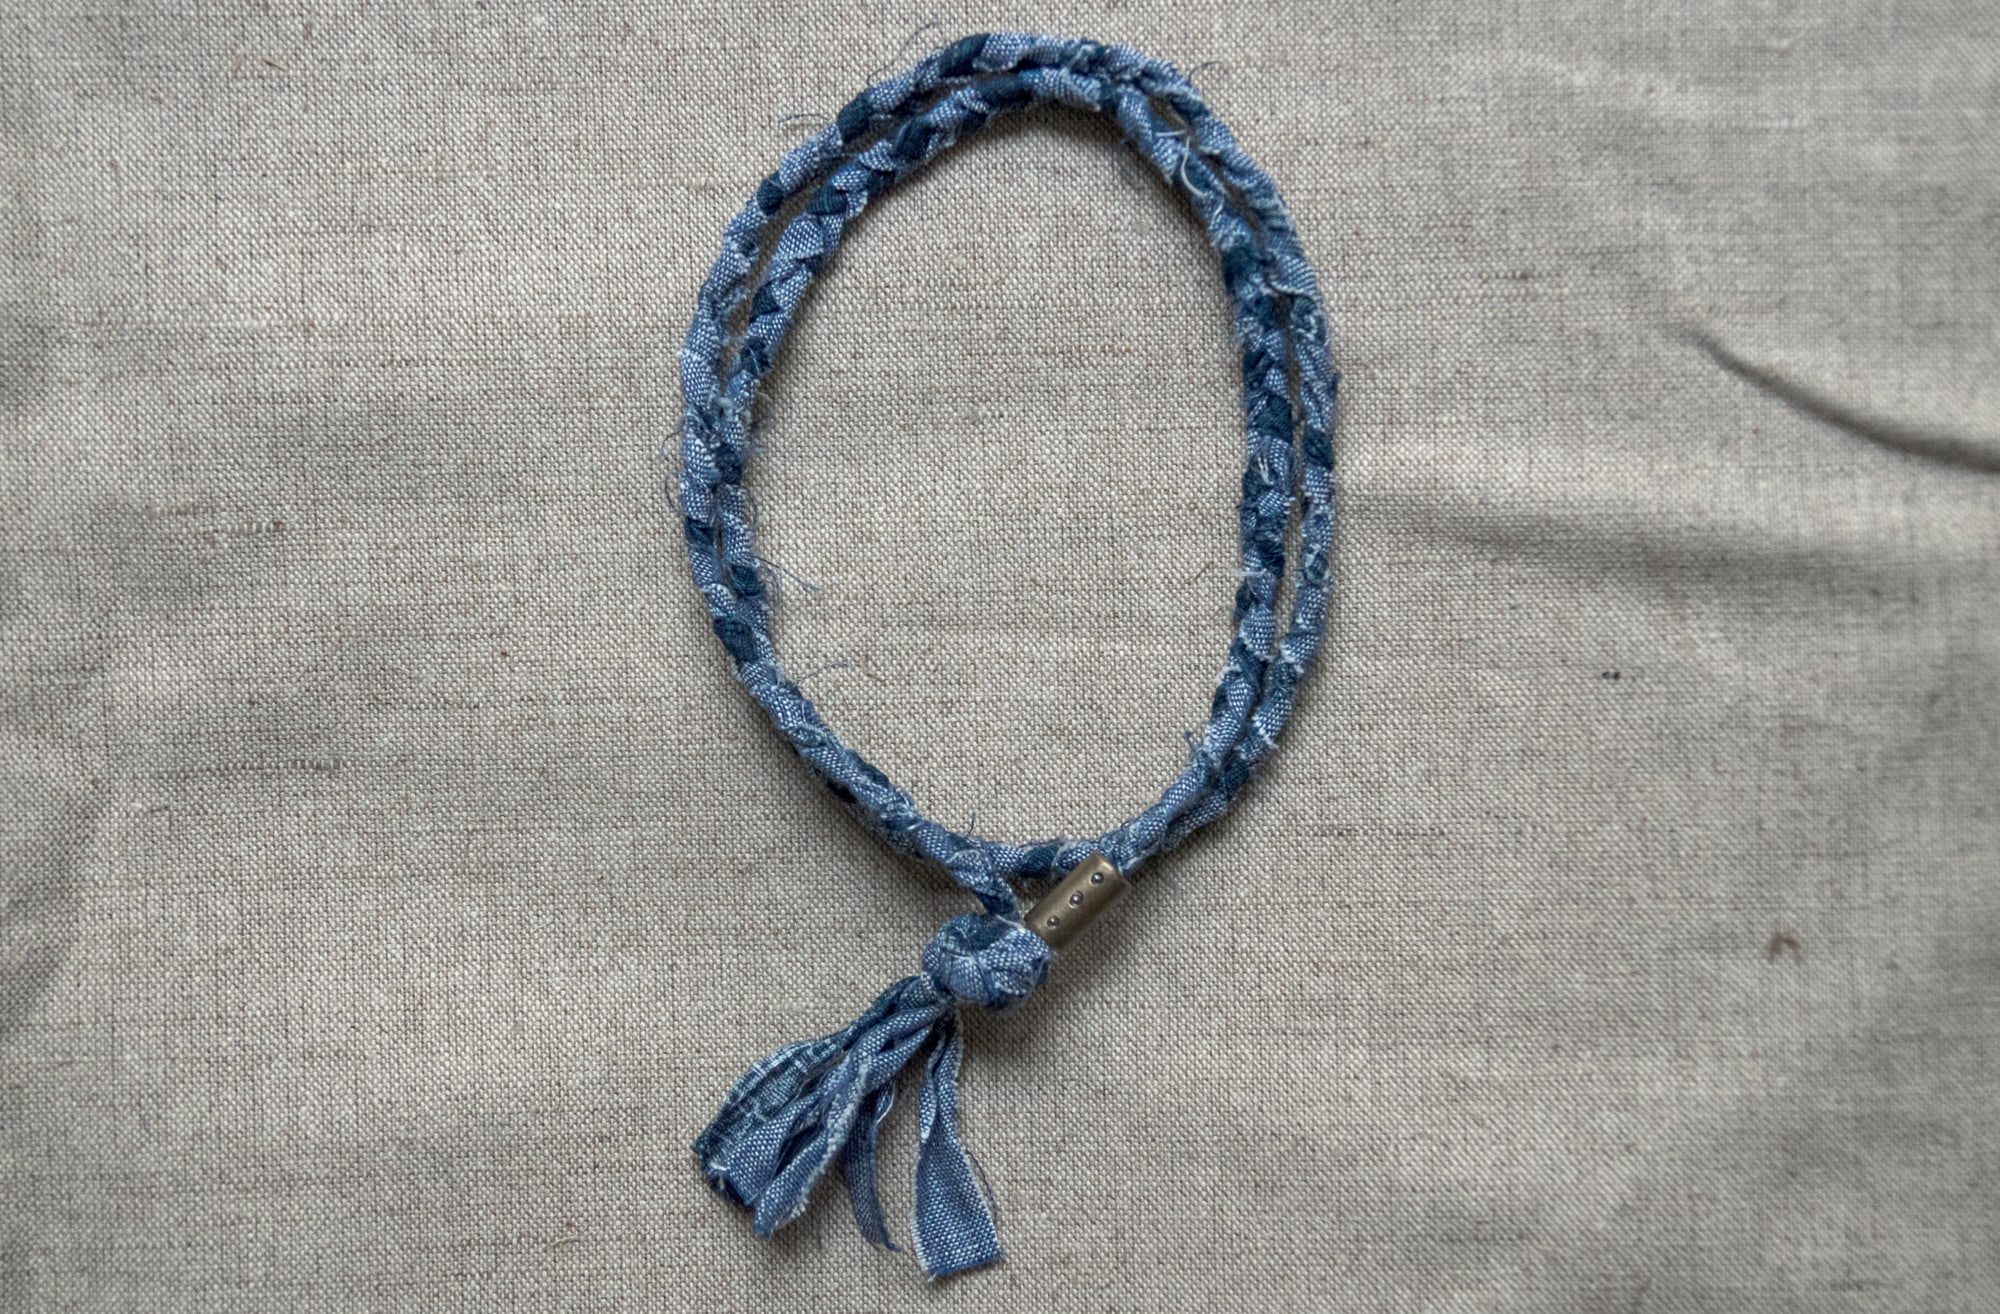 collier Borali en tissu tressé - woven neclace from upcycling fabrics - japanese cotton mixed with blue linen - hand made in France